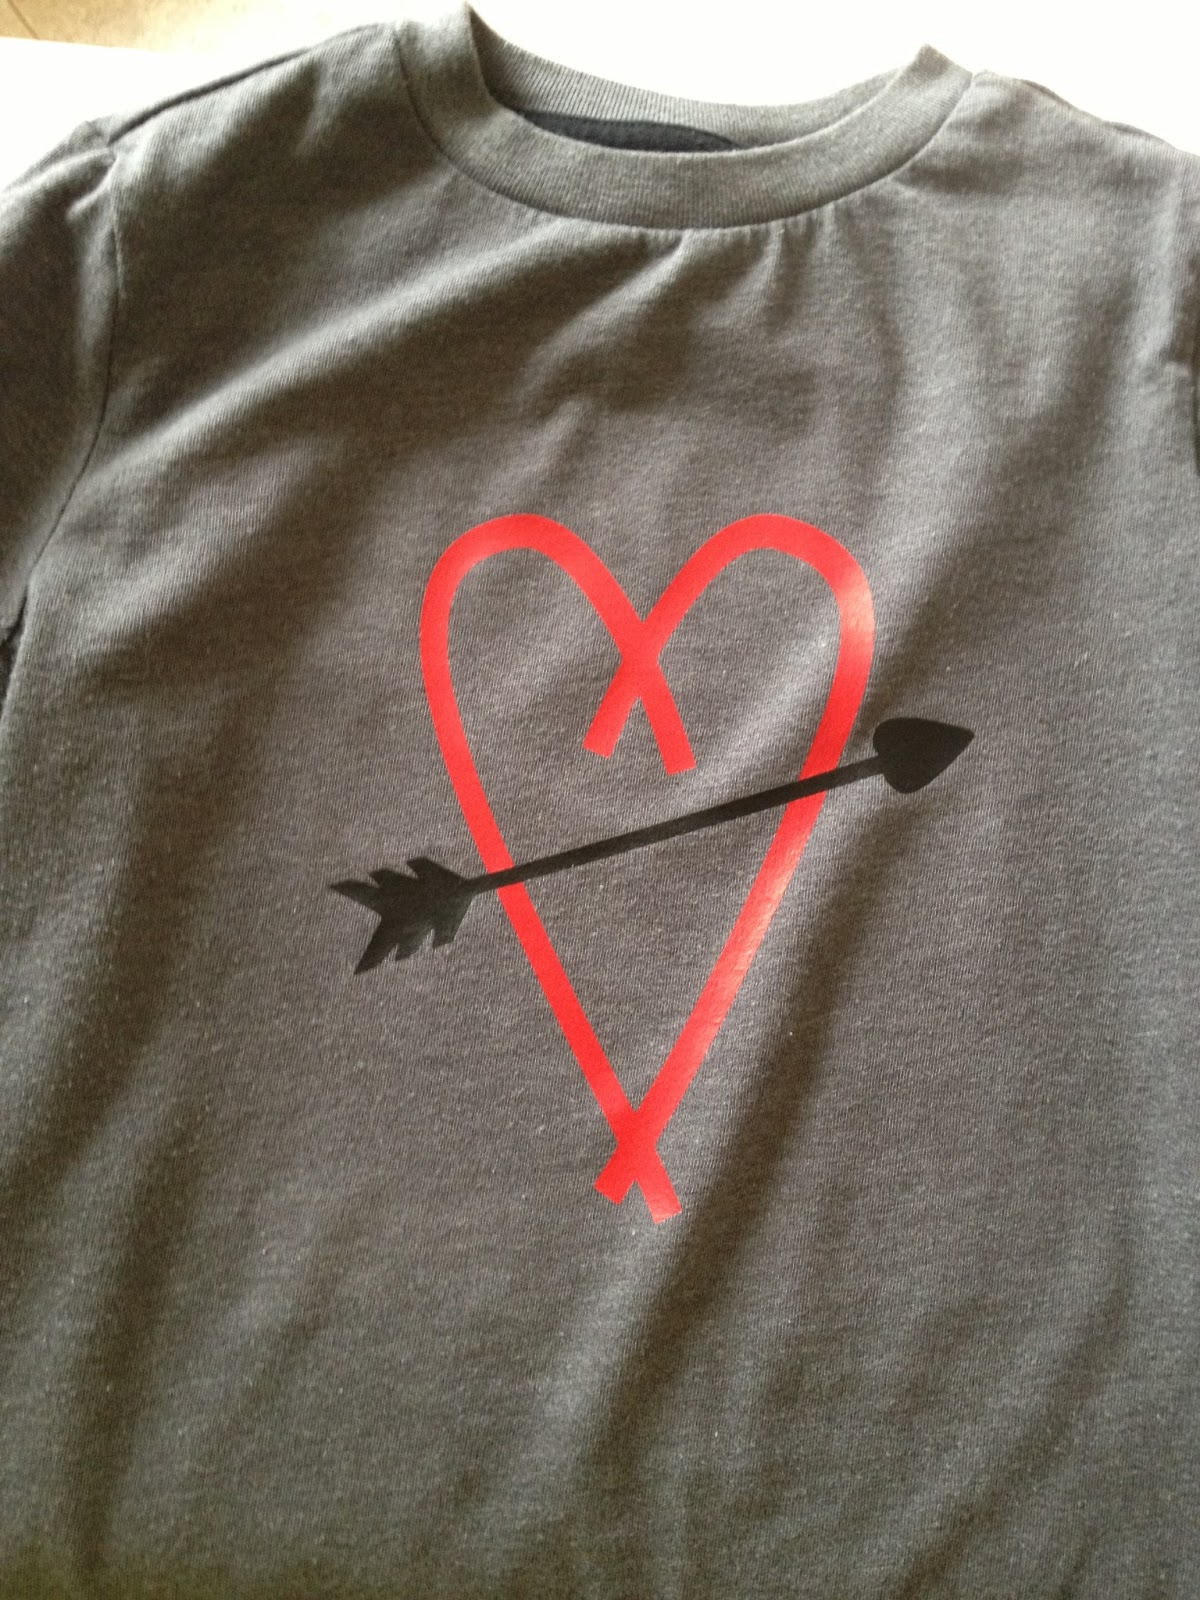 From The Hive Valentines Shirts And Heat Transfer Vinyl